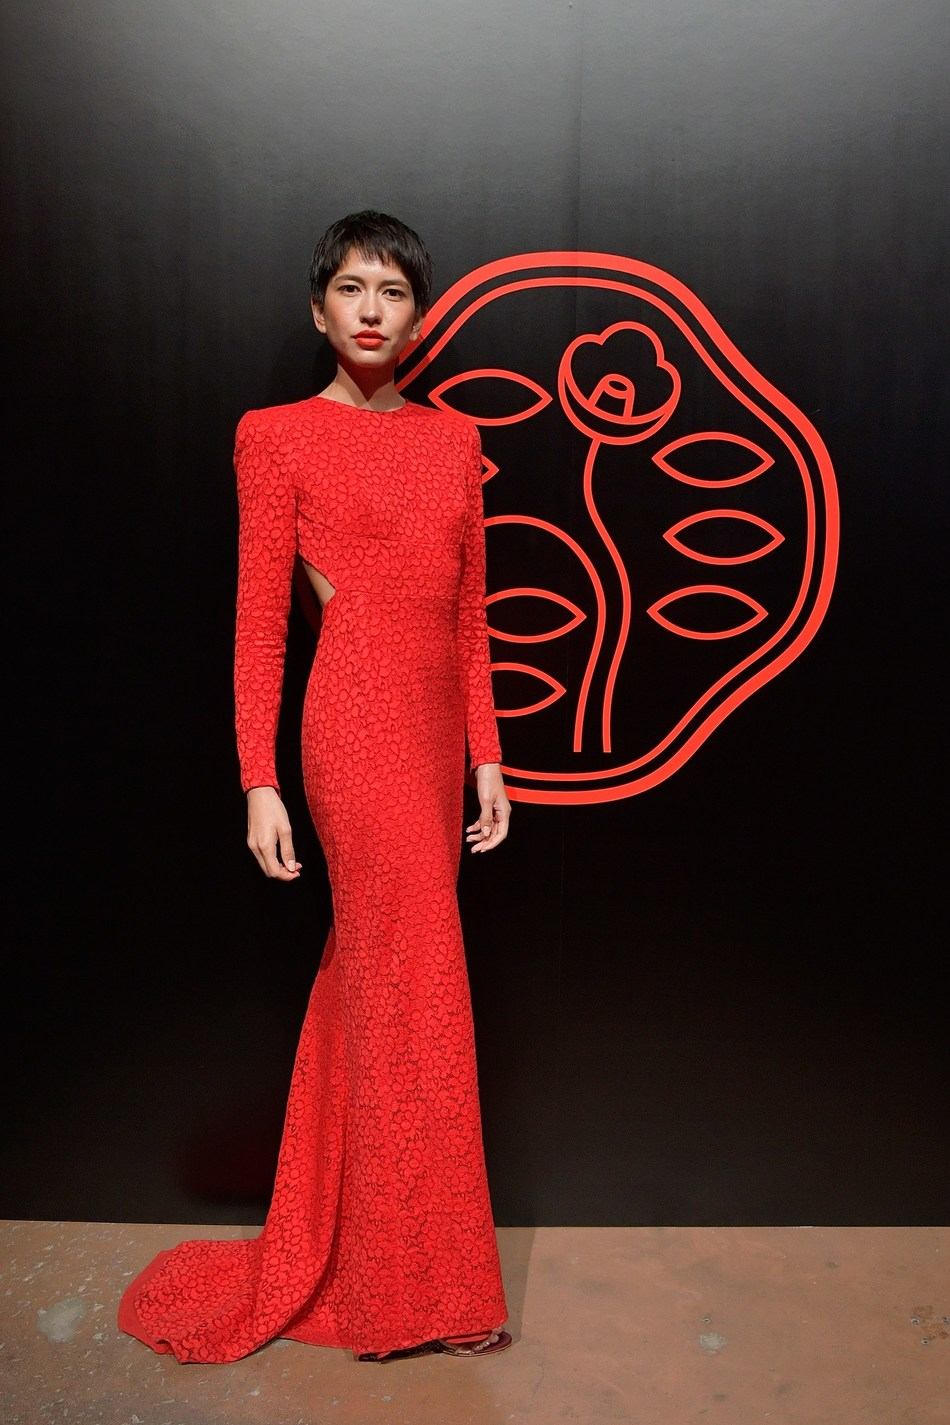 Photo by Keith Tsuji/Getty Images for SHISEIDO